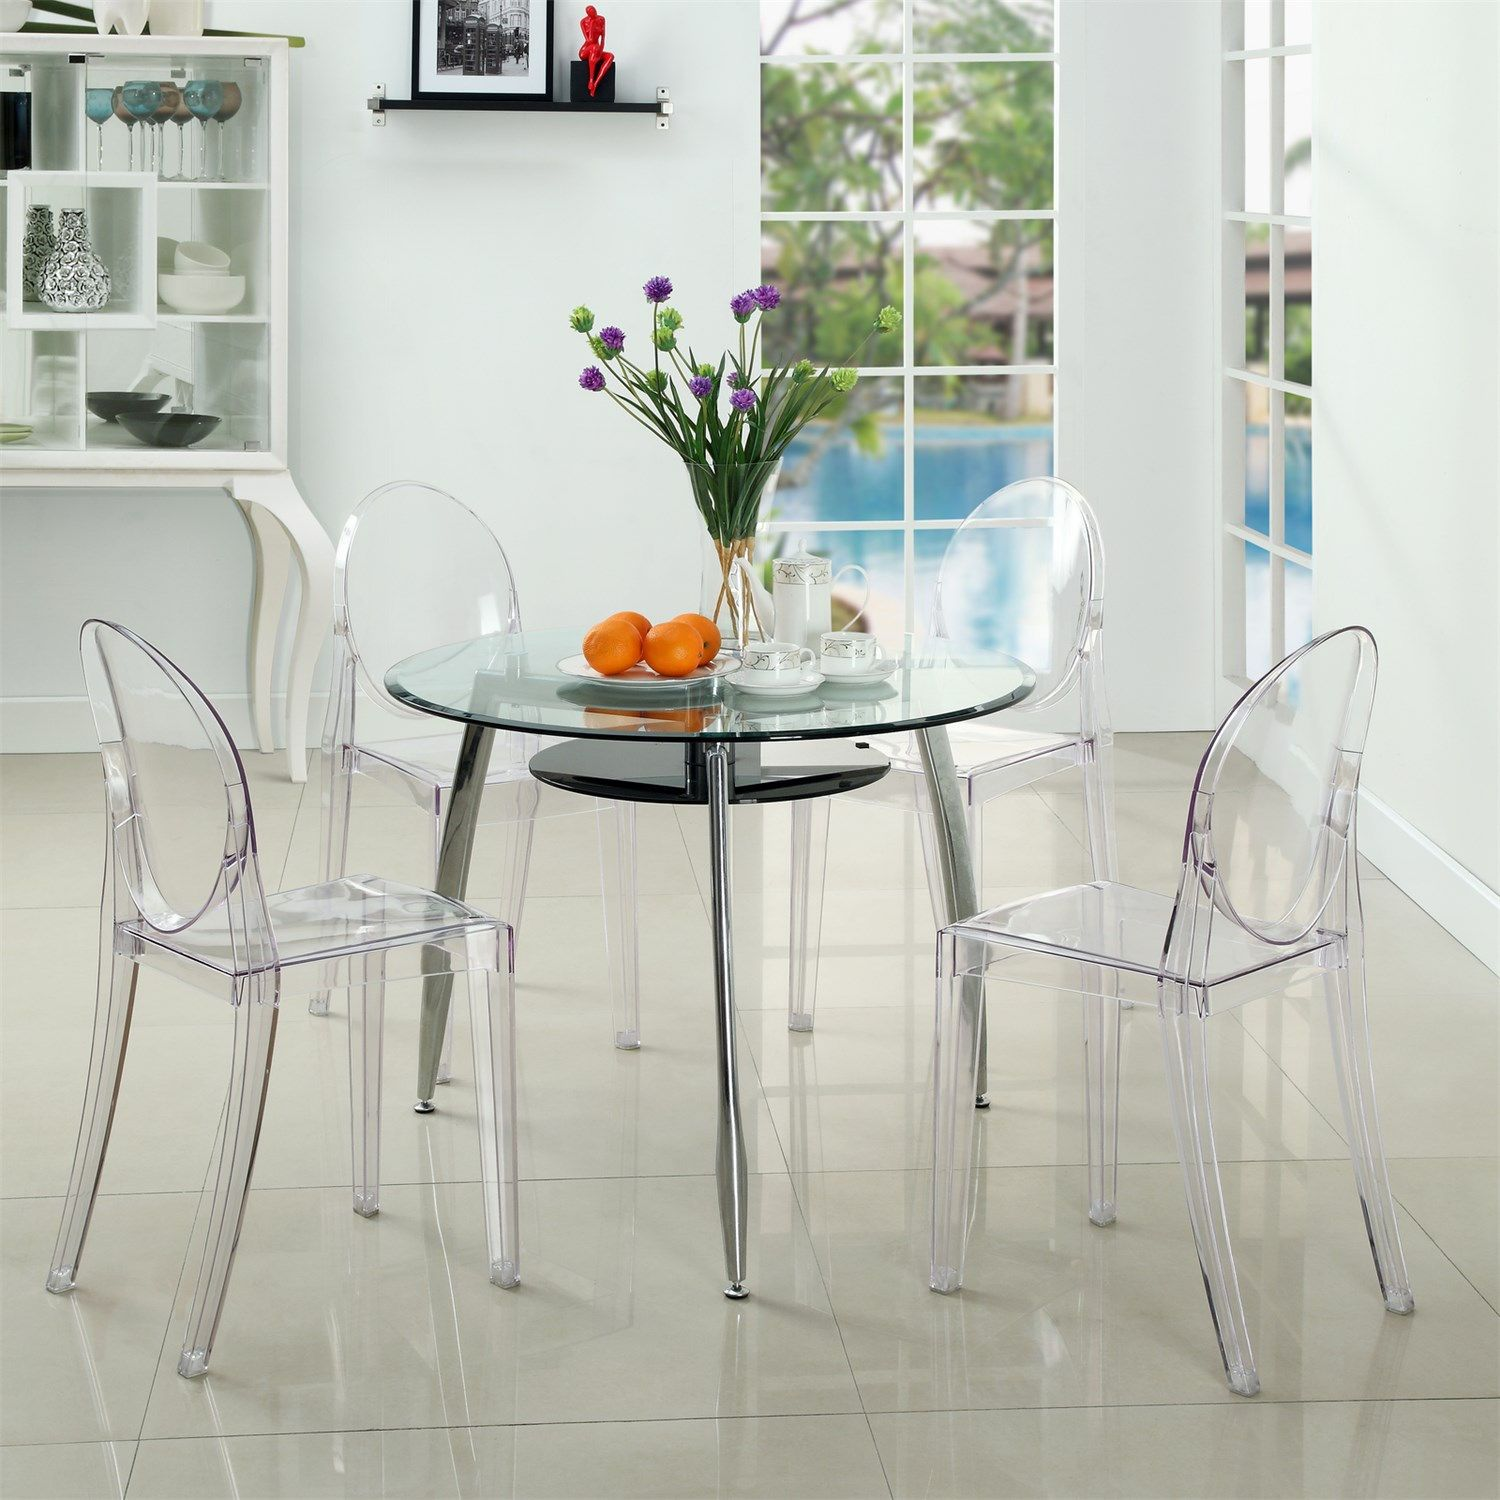 East End Imports Eei 122 Clr Casper Side Chair In Clear Acrylic